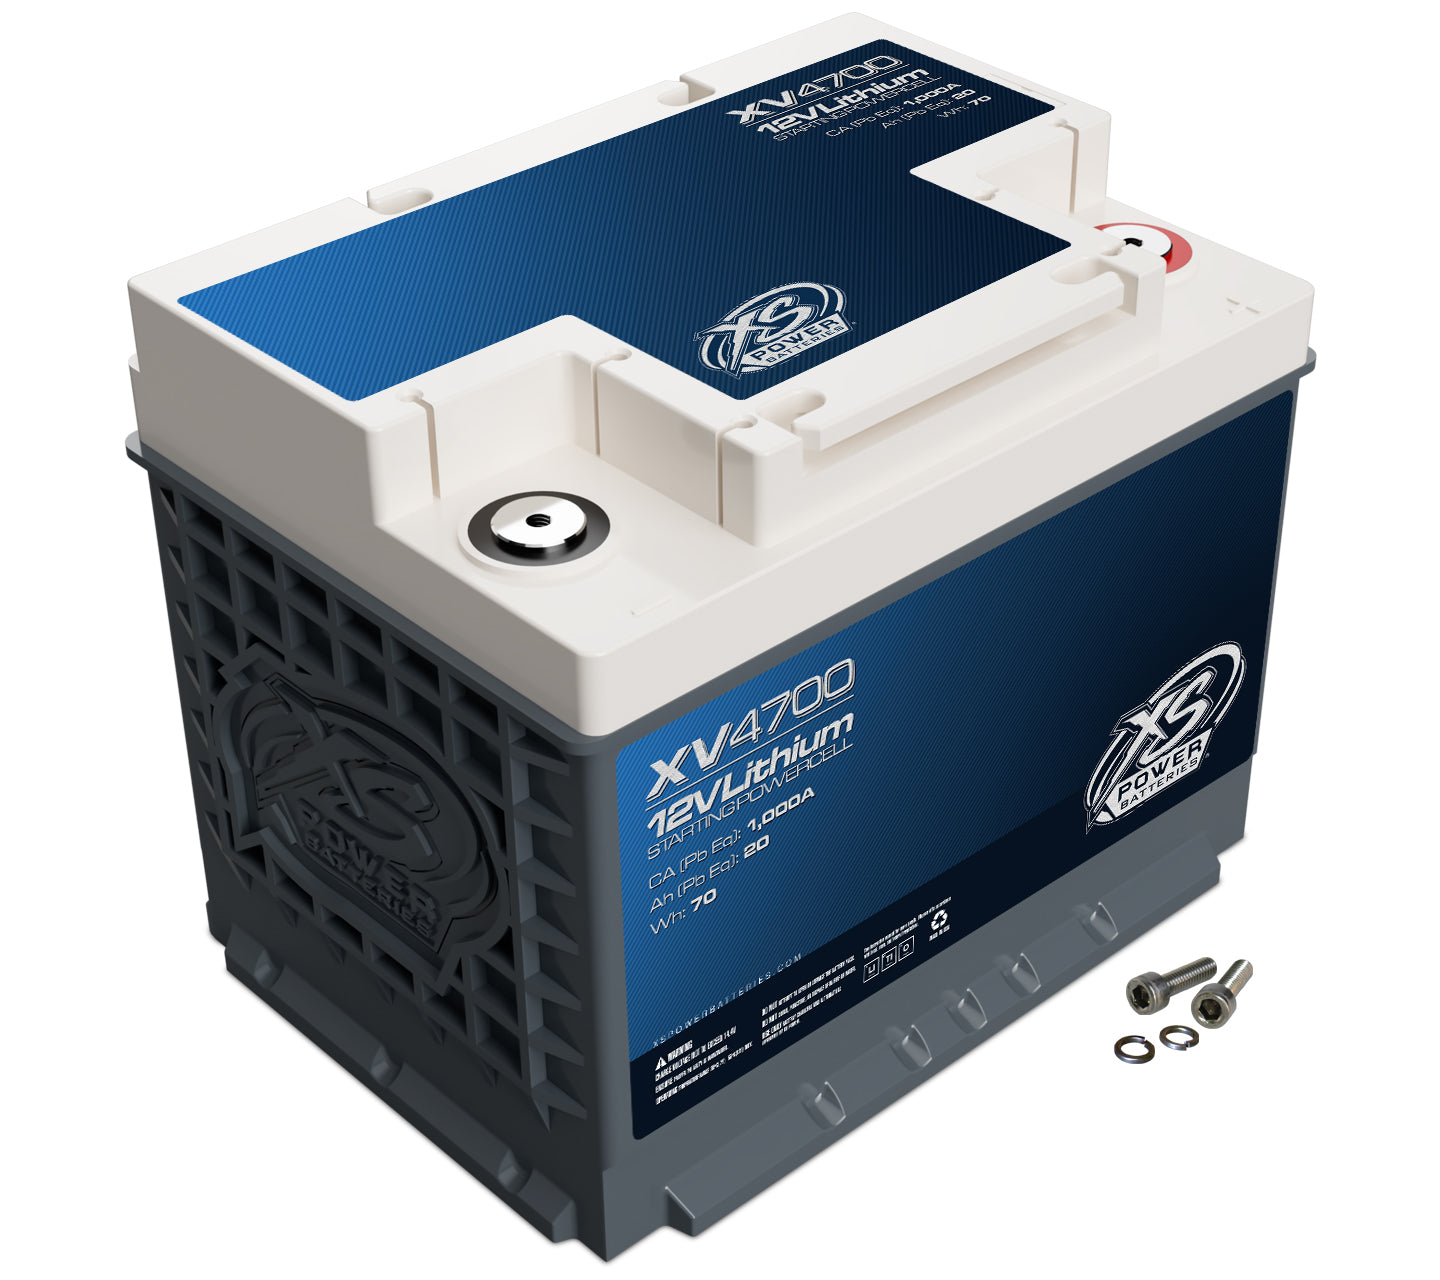 XS Power XV4700 Lithium Titanate Battery (Group 47 / H5 / L2)